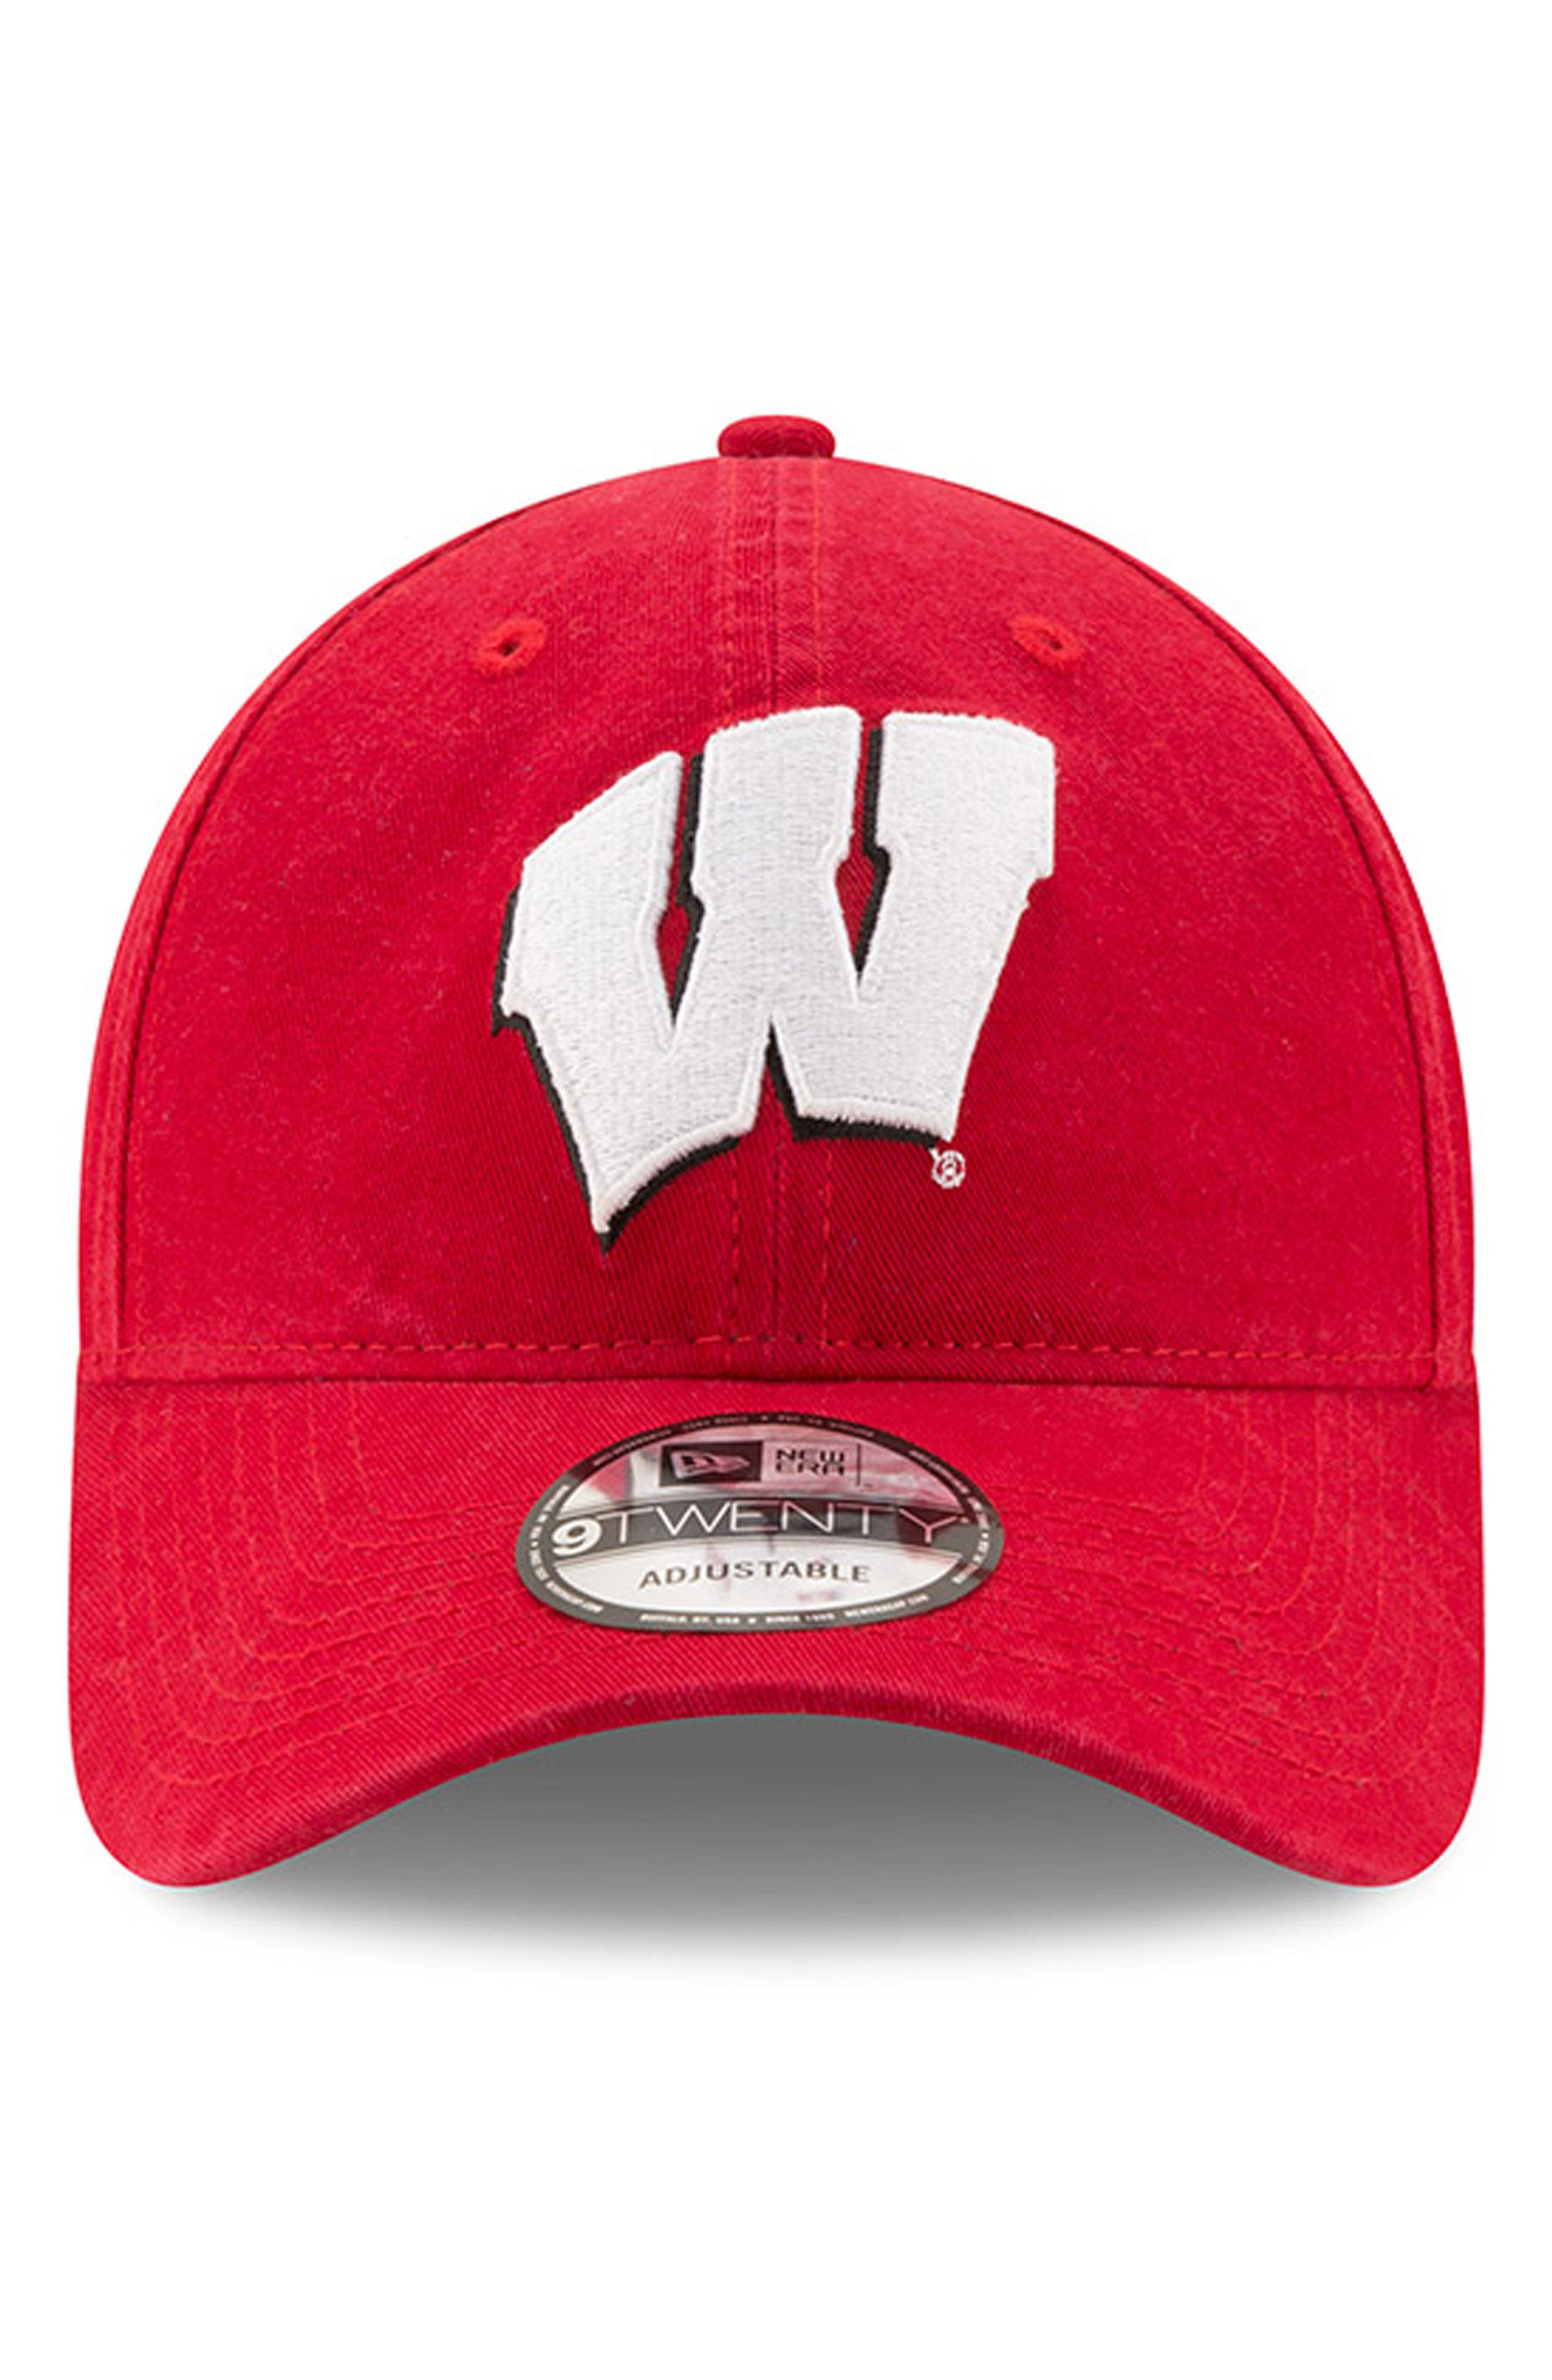 New Era Collegiate Core Classic - Wisconsin Badgers Baseball Cap,                             Alternate thumbnail 2, color,                             600